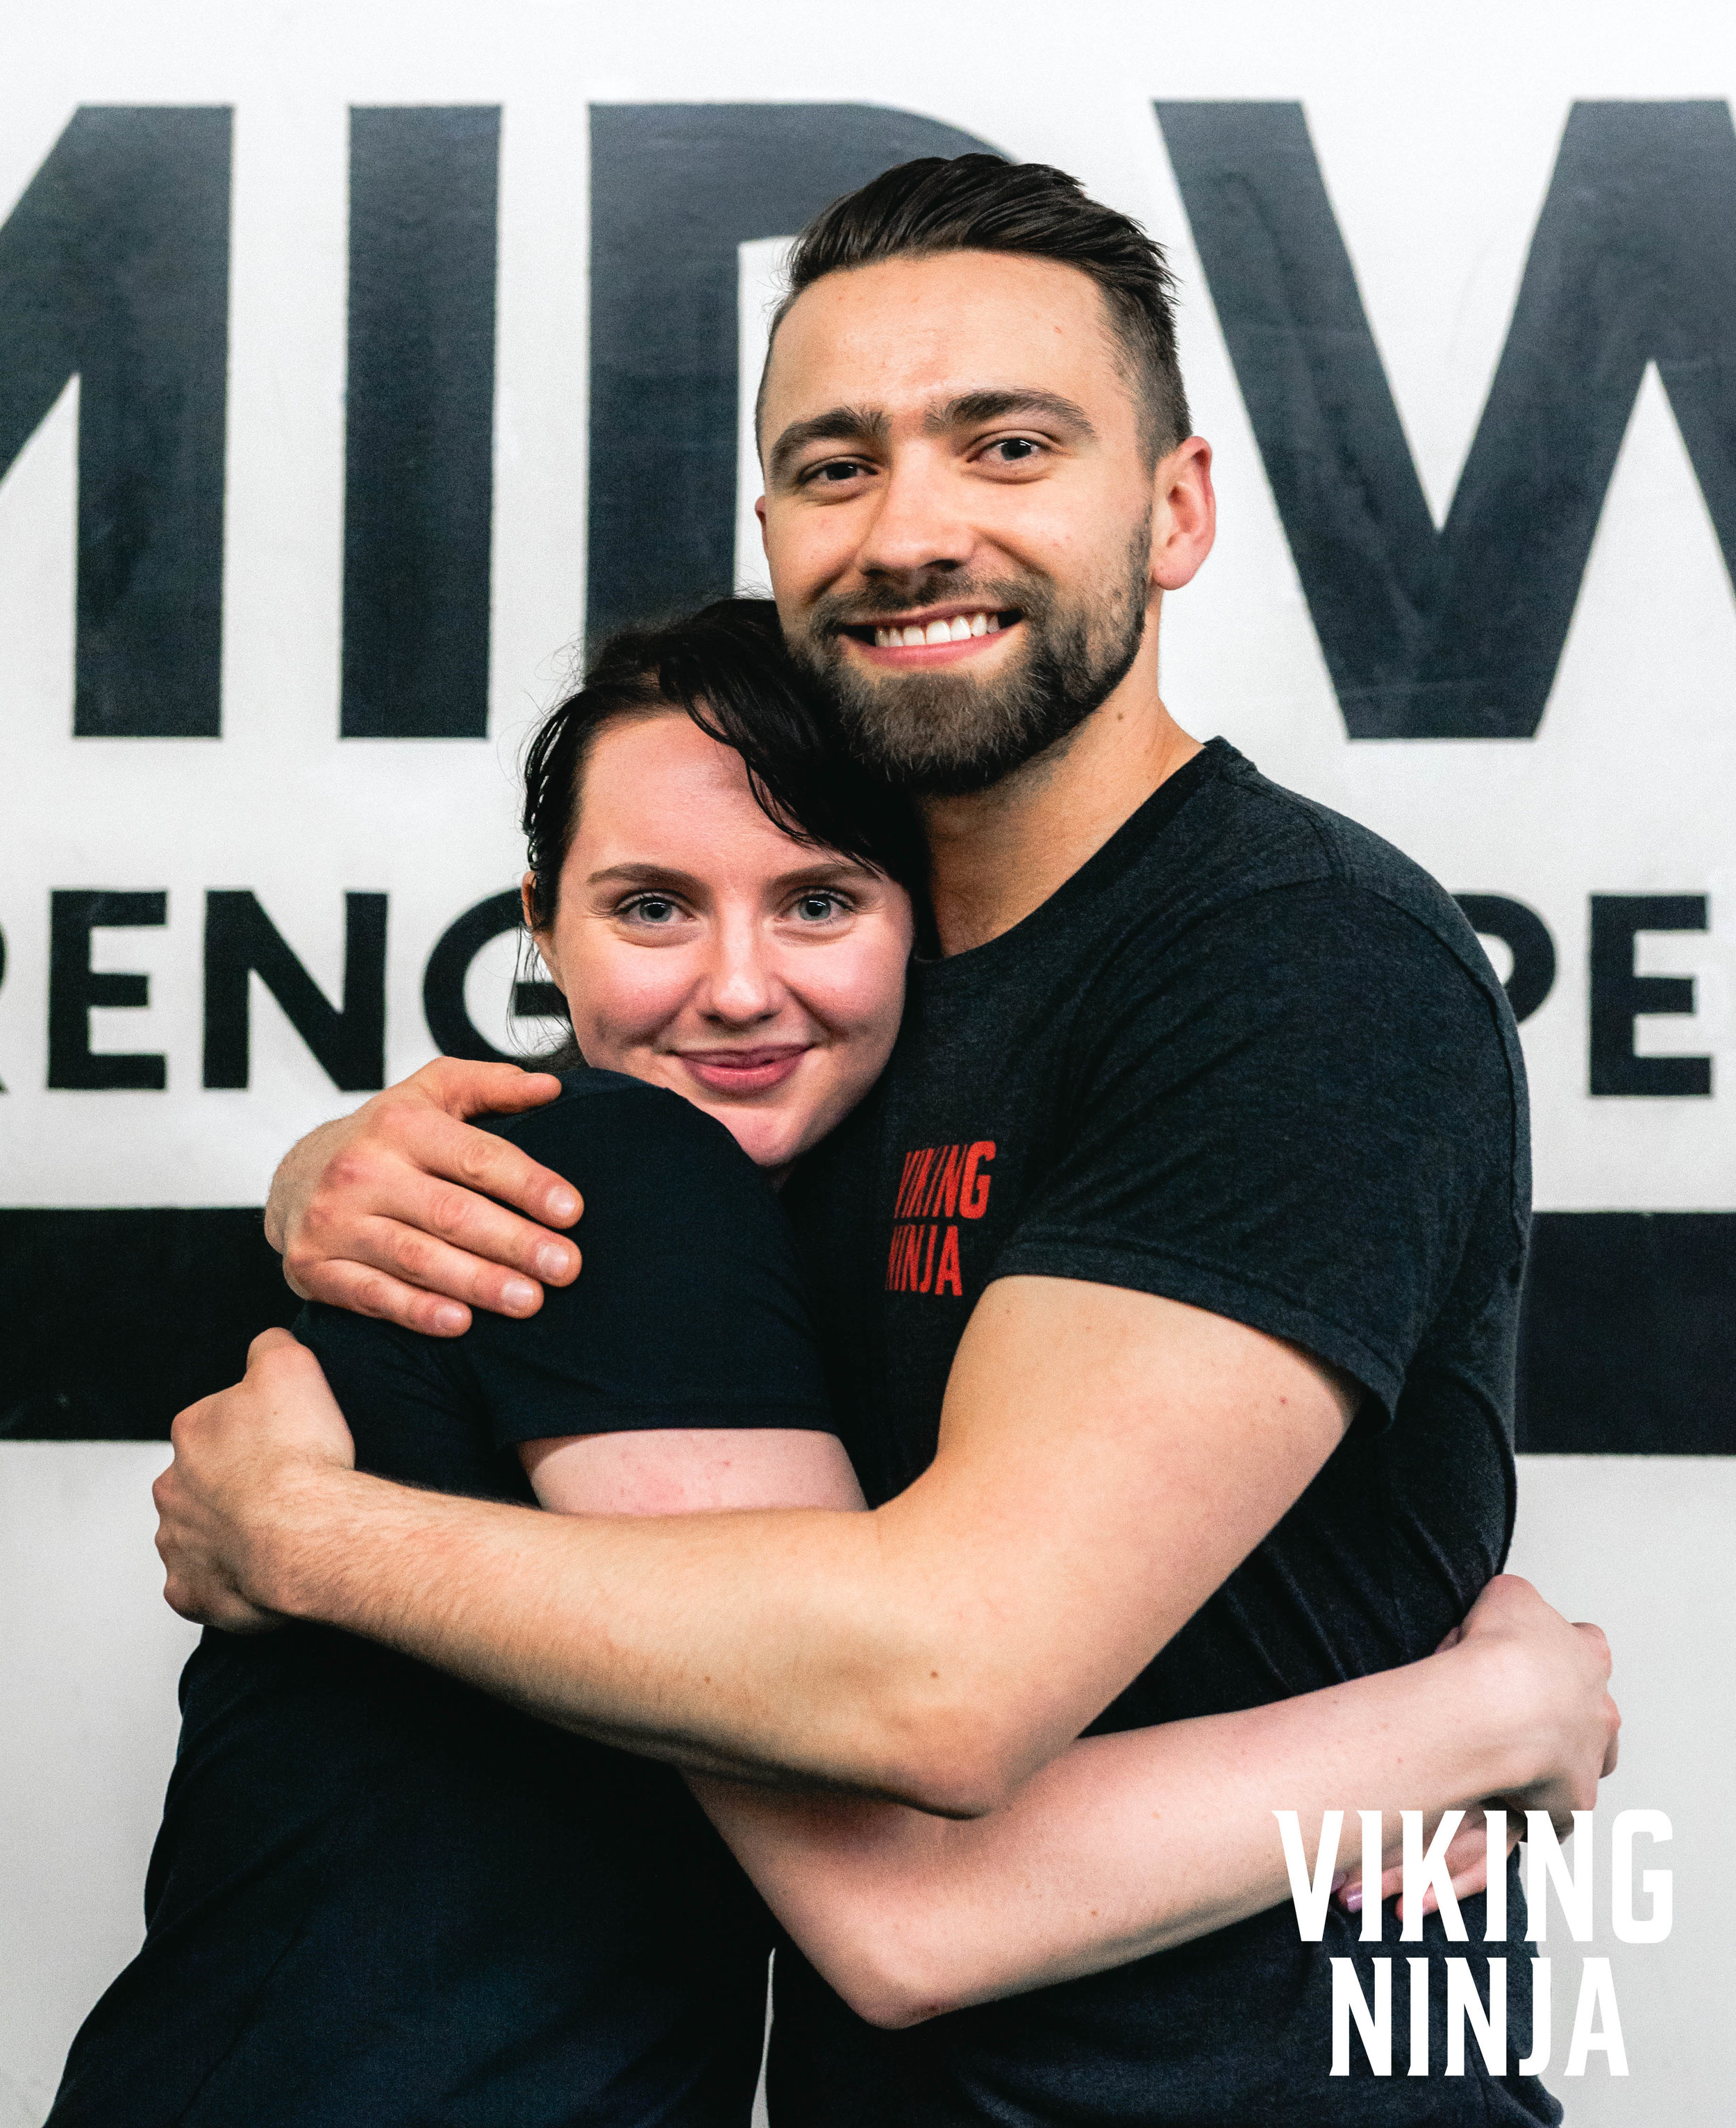 Zane Roebuck and Macaila Britton at the Viking Ninja Training System Event  in Chicago